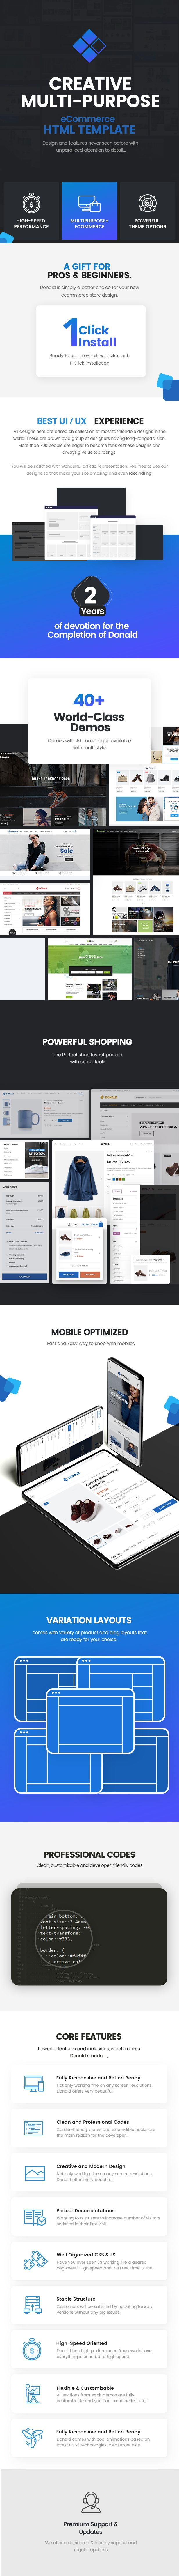 Riode - eCommerce HTML Template - 1